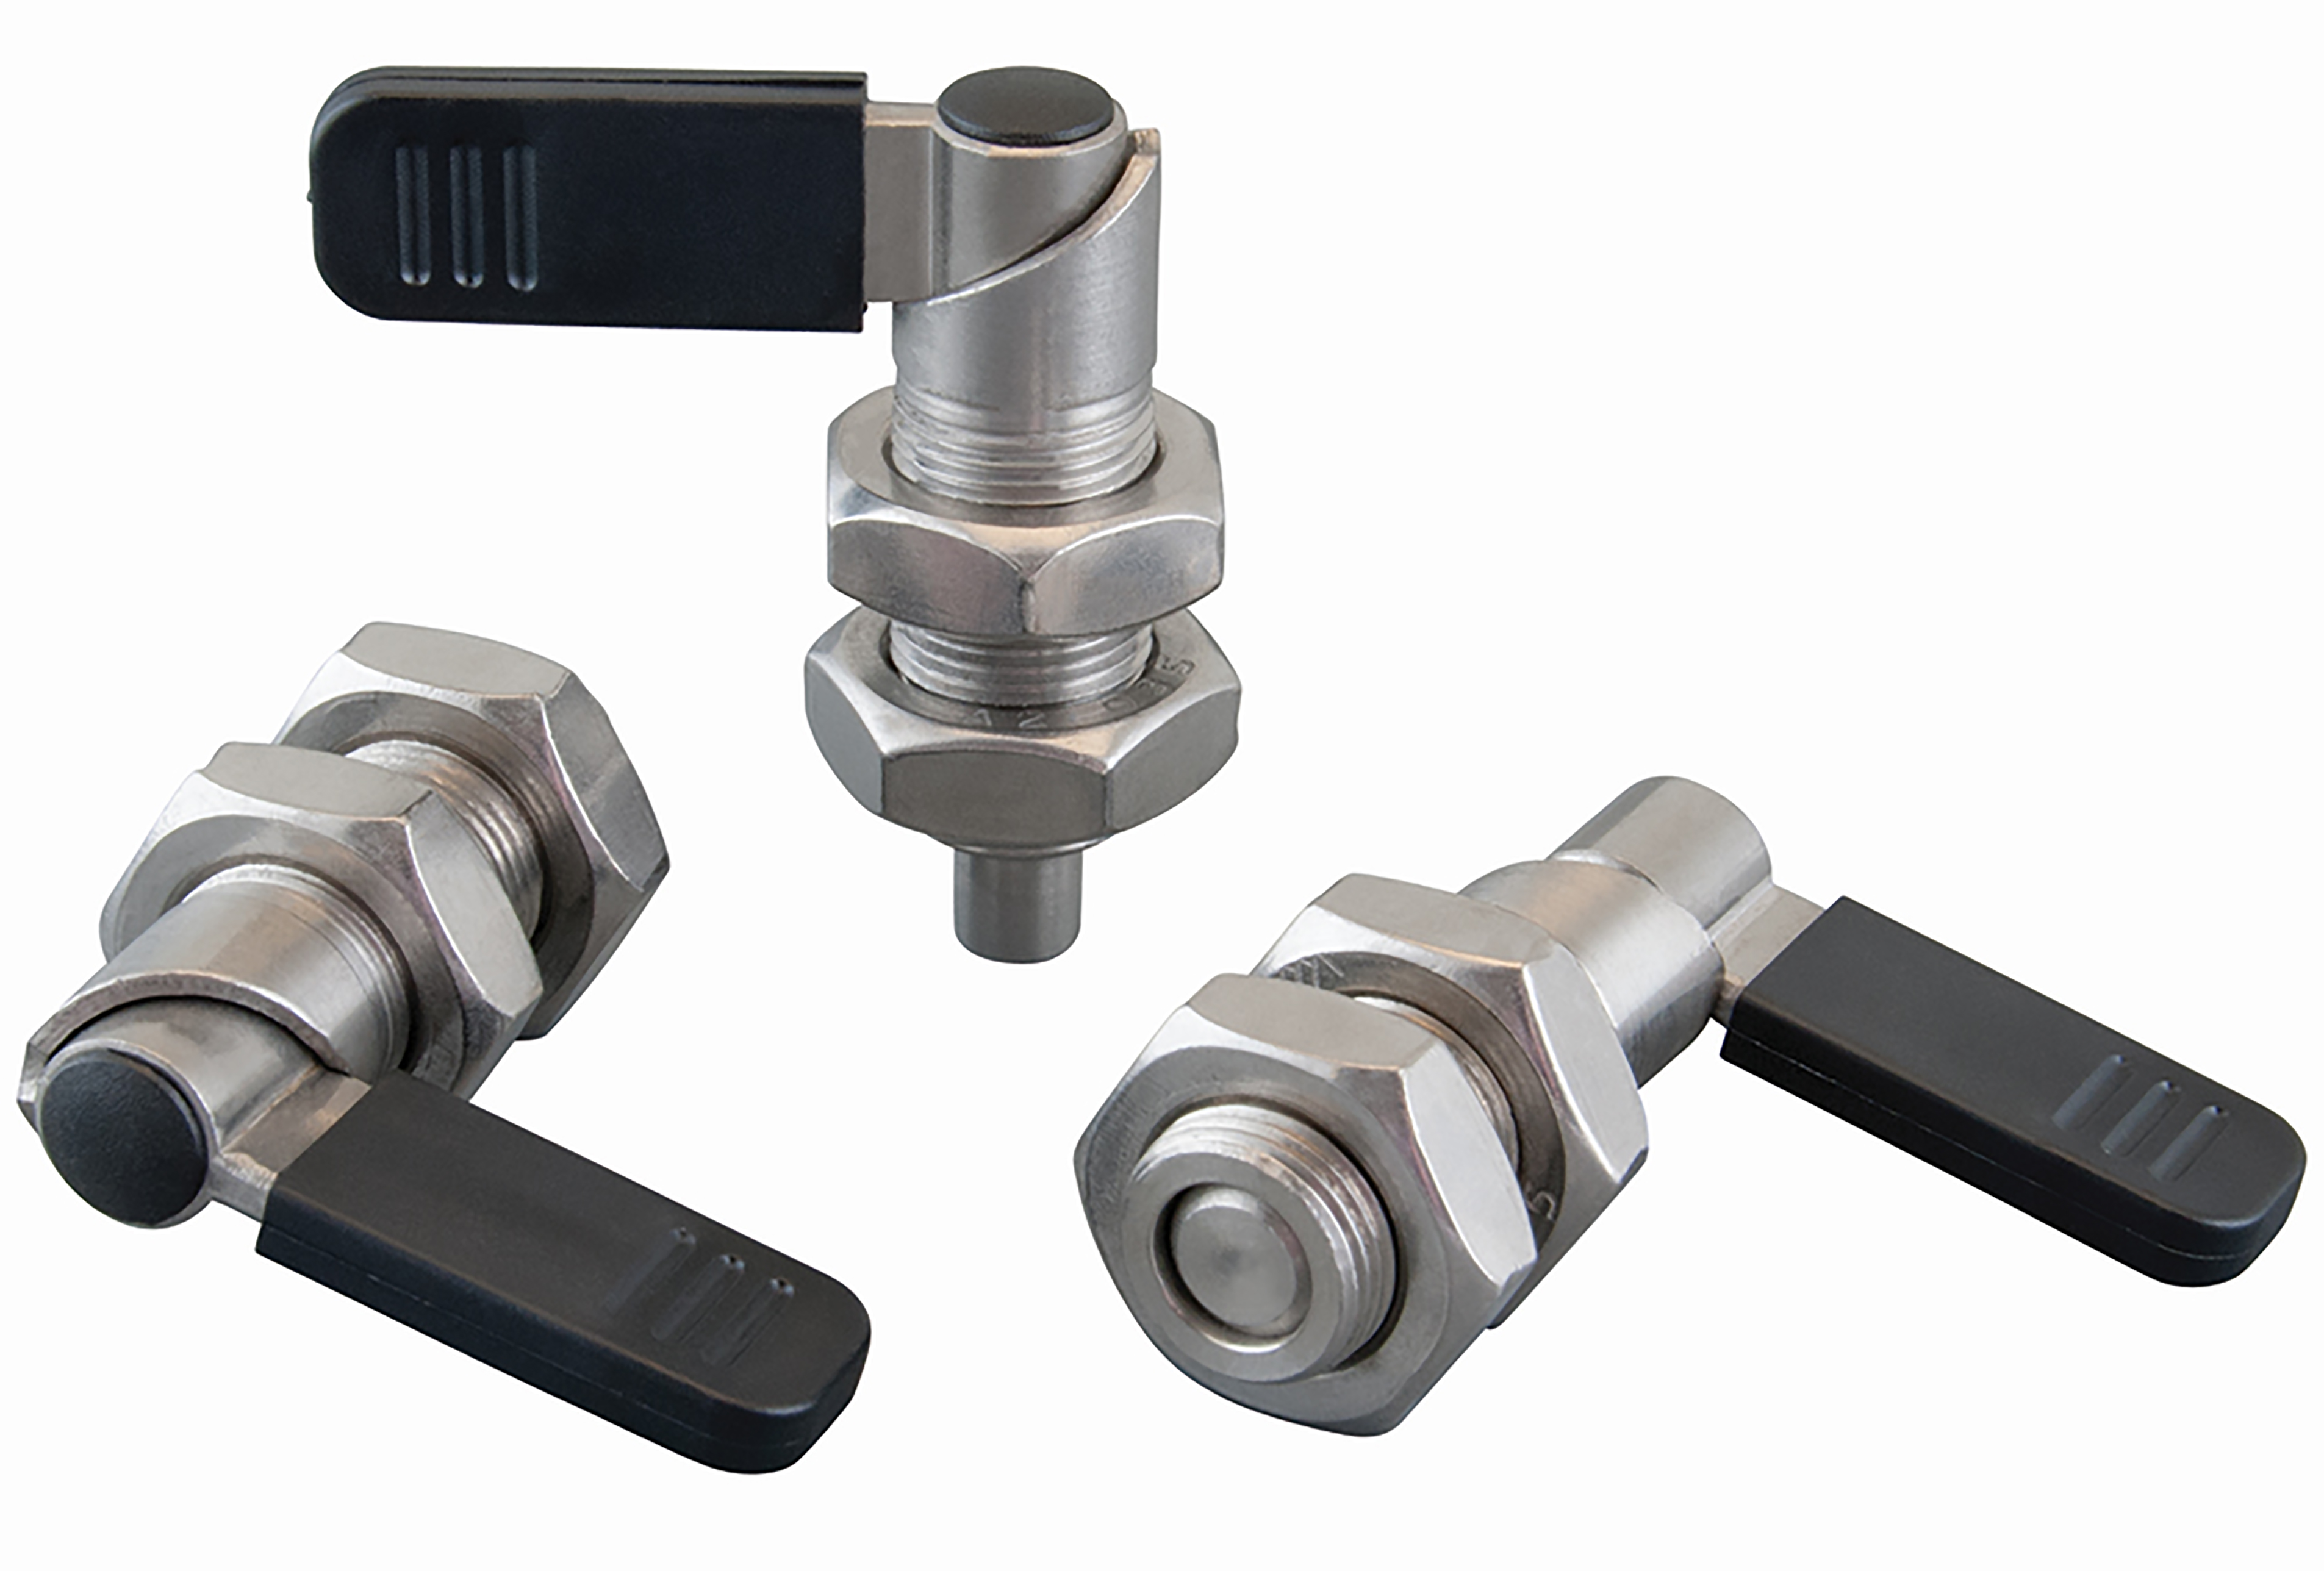 Cam operated index plungers enable easy positioning and locking